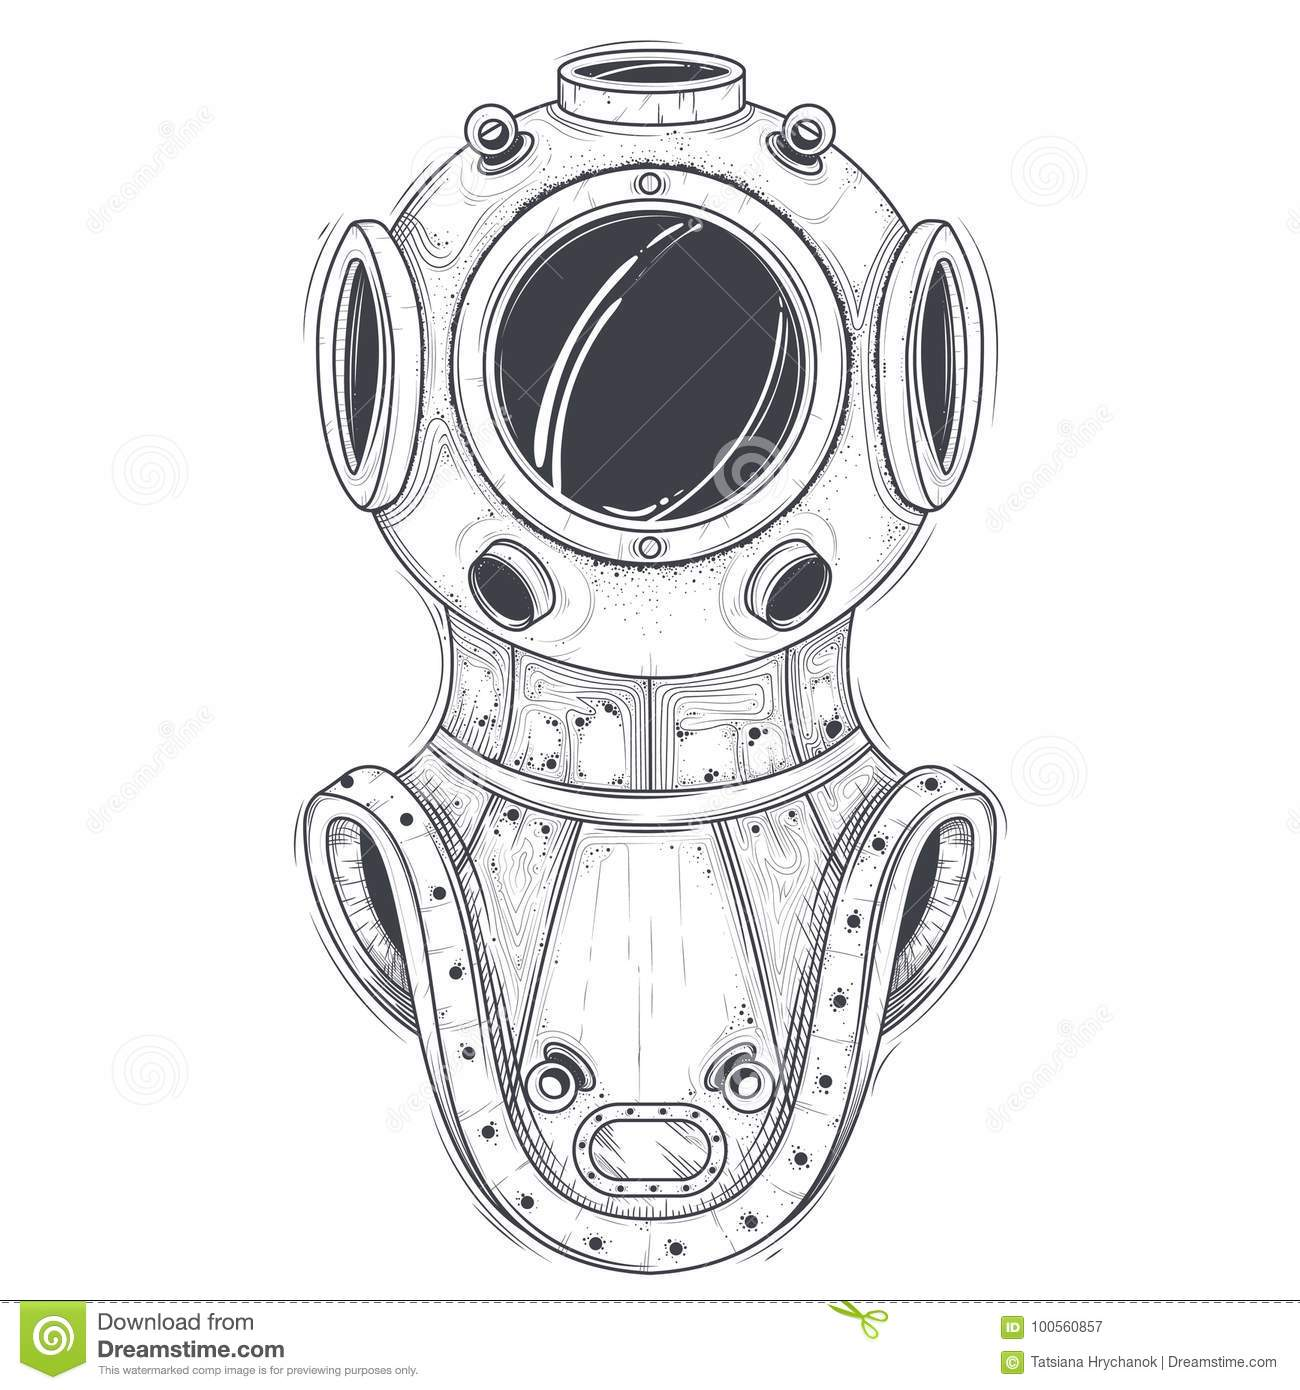 Antique Diving Suit Royalty Free Stock Photography